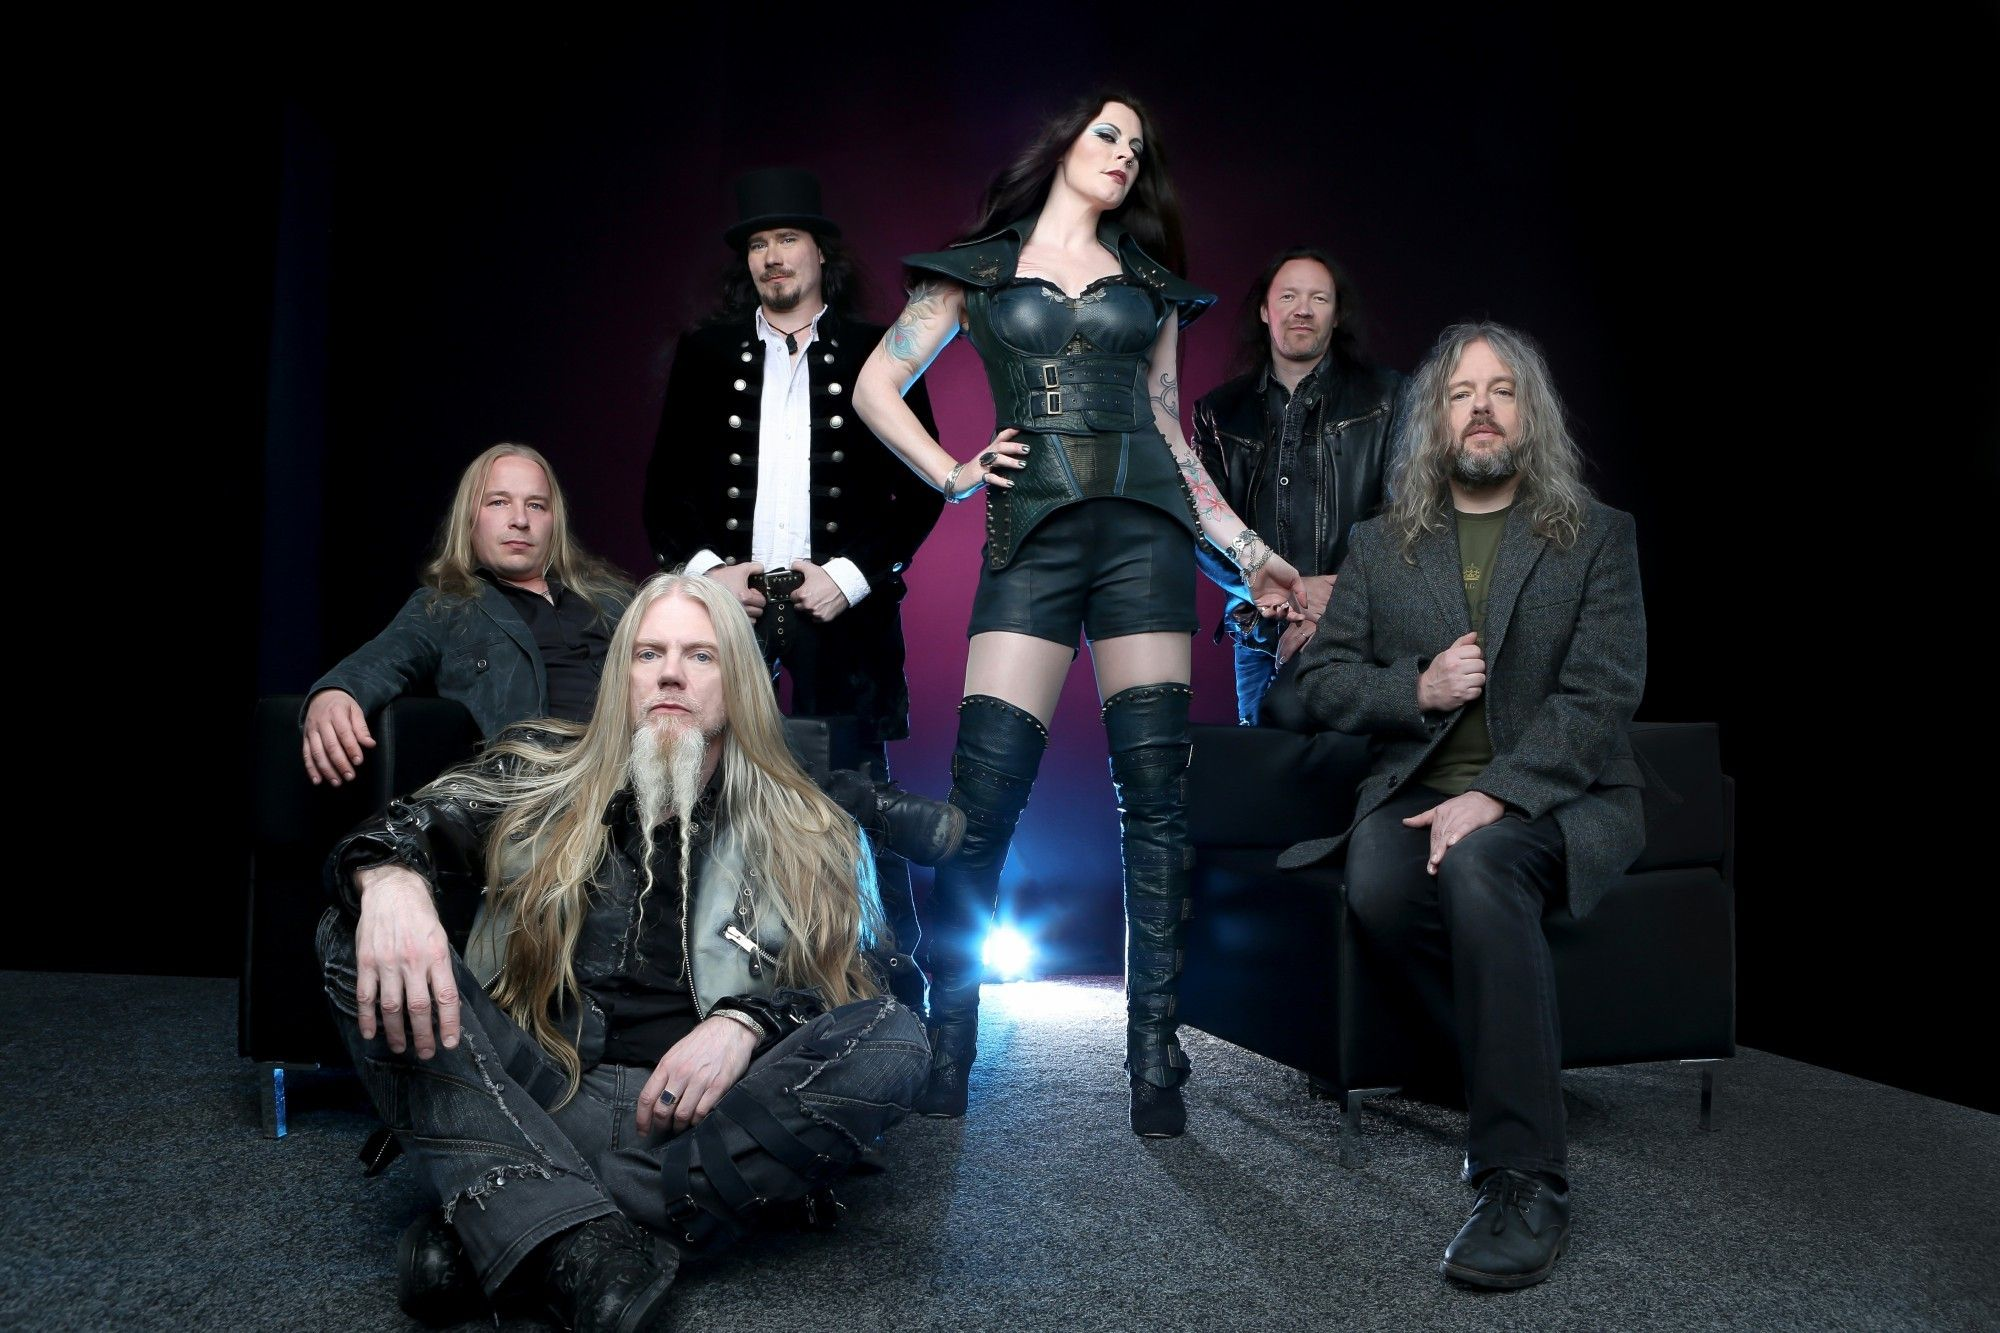 nightwish_2018_by_tim_tronckoesmall.jpg